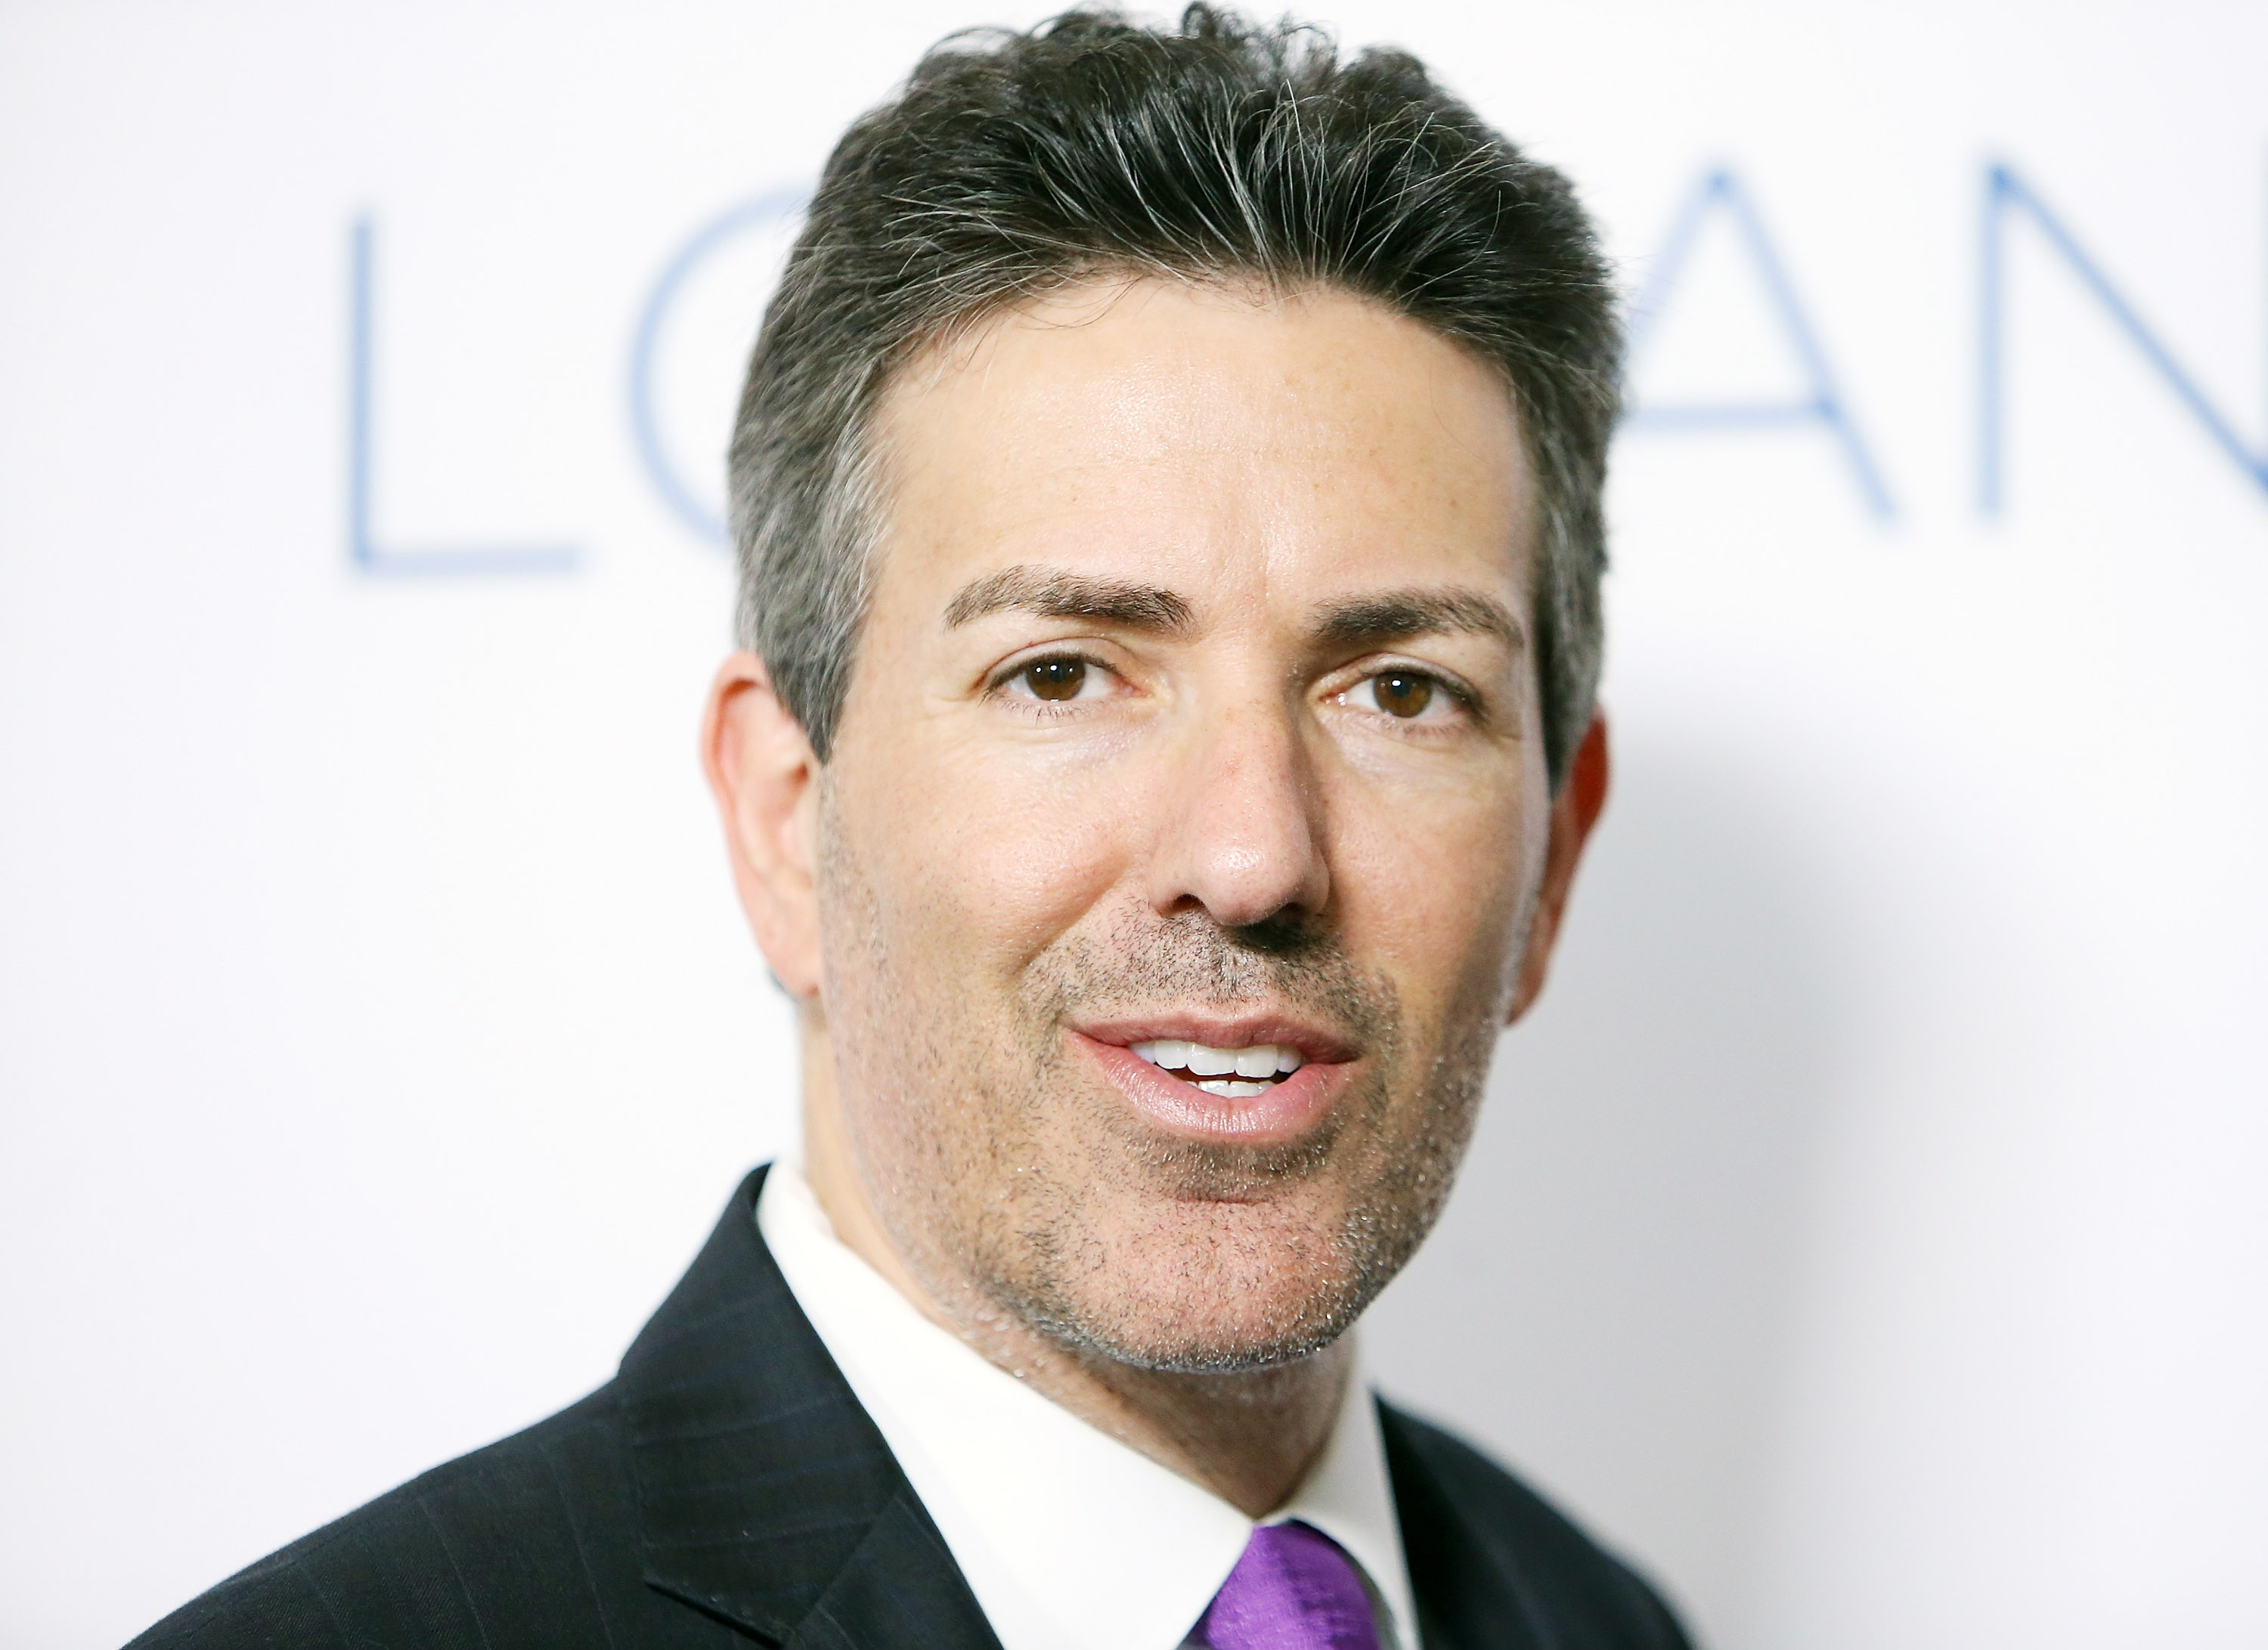 Wayne Pacelle arrives at The Humane Society of The United States' Los Angeles Benefit Gala held at Regent Beverly Wilshire Hotel on May 16, 2015 in Beverly Hills, California.